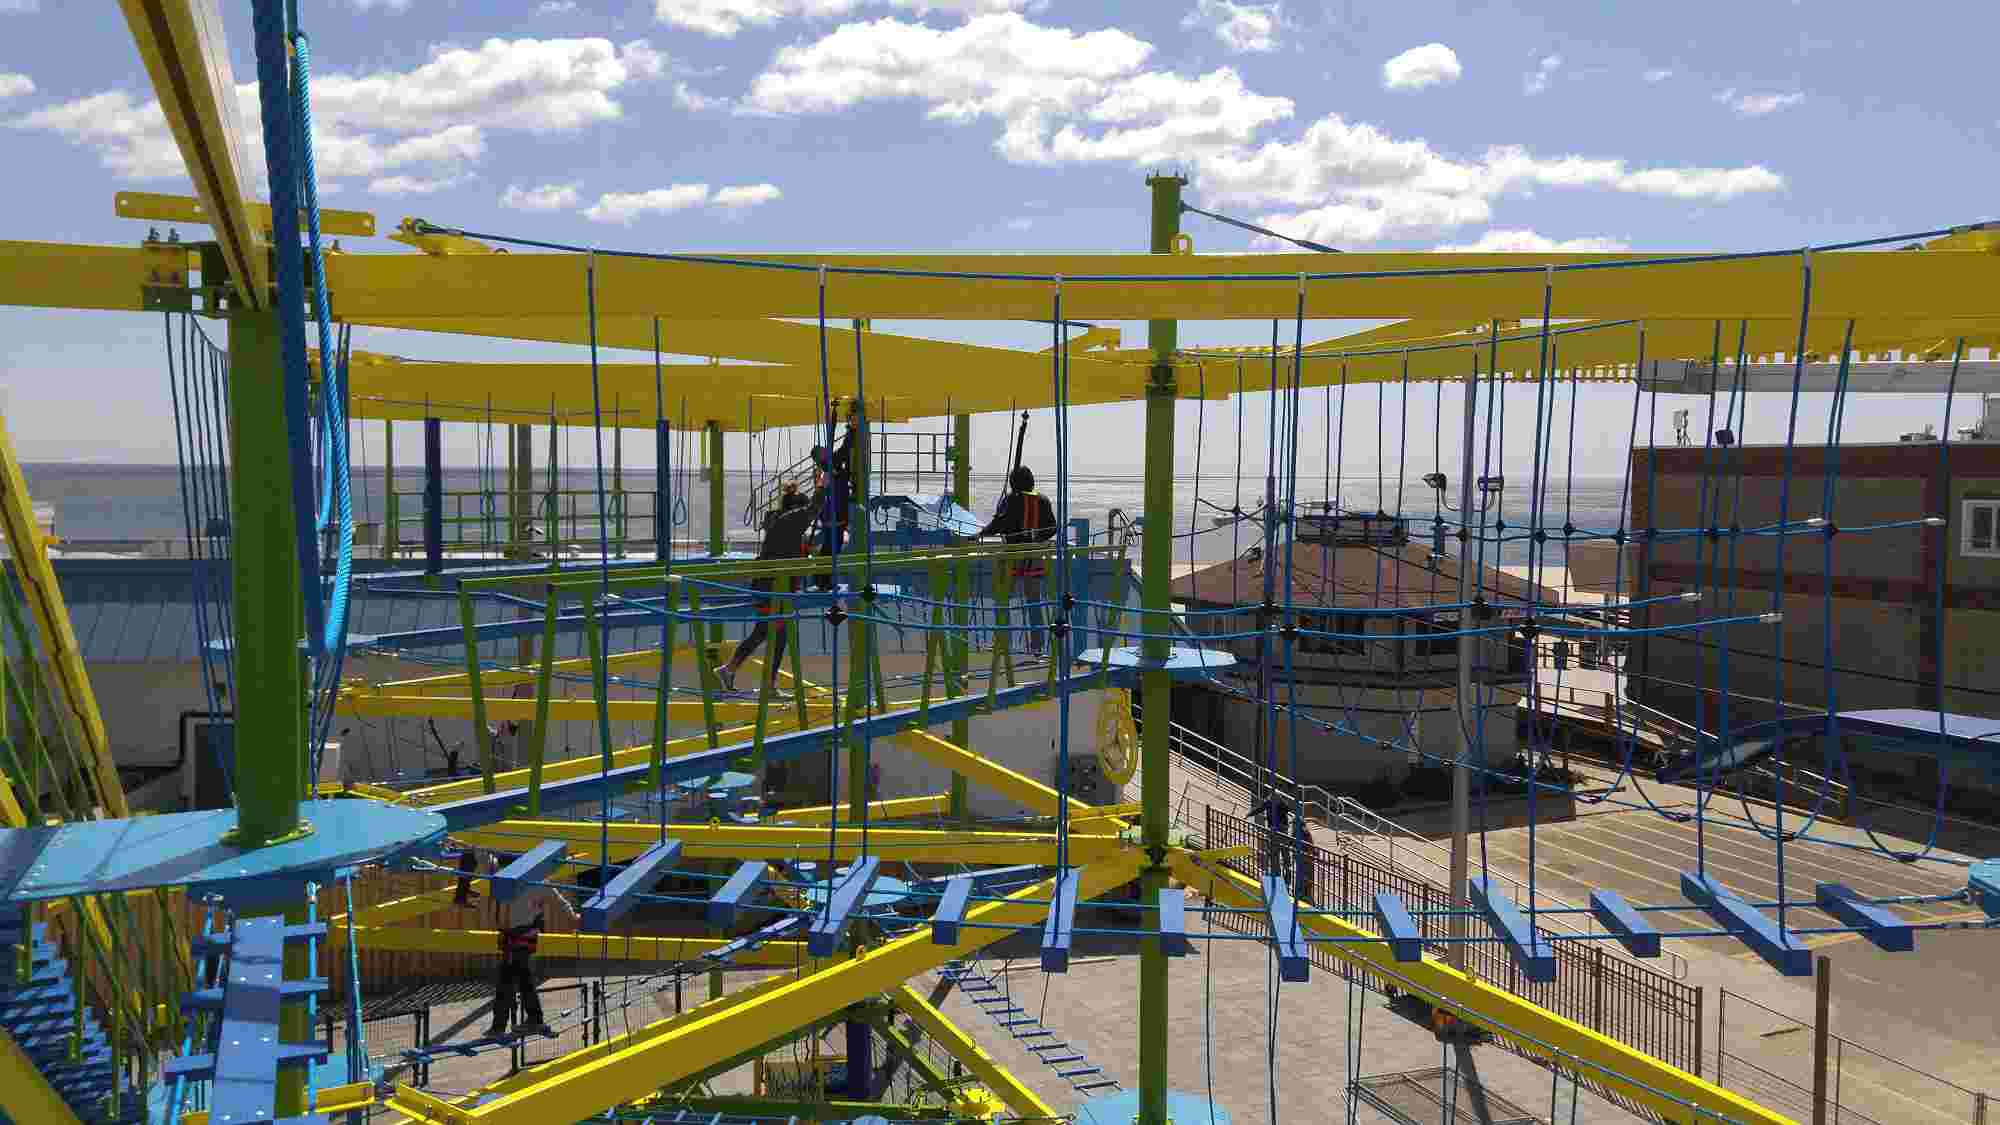 Ropes Courses Provides Sky Trail® Attraction to Florida's Seascape Towne Centre Development